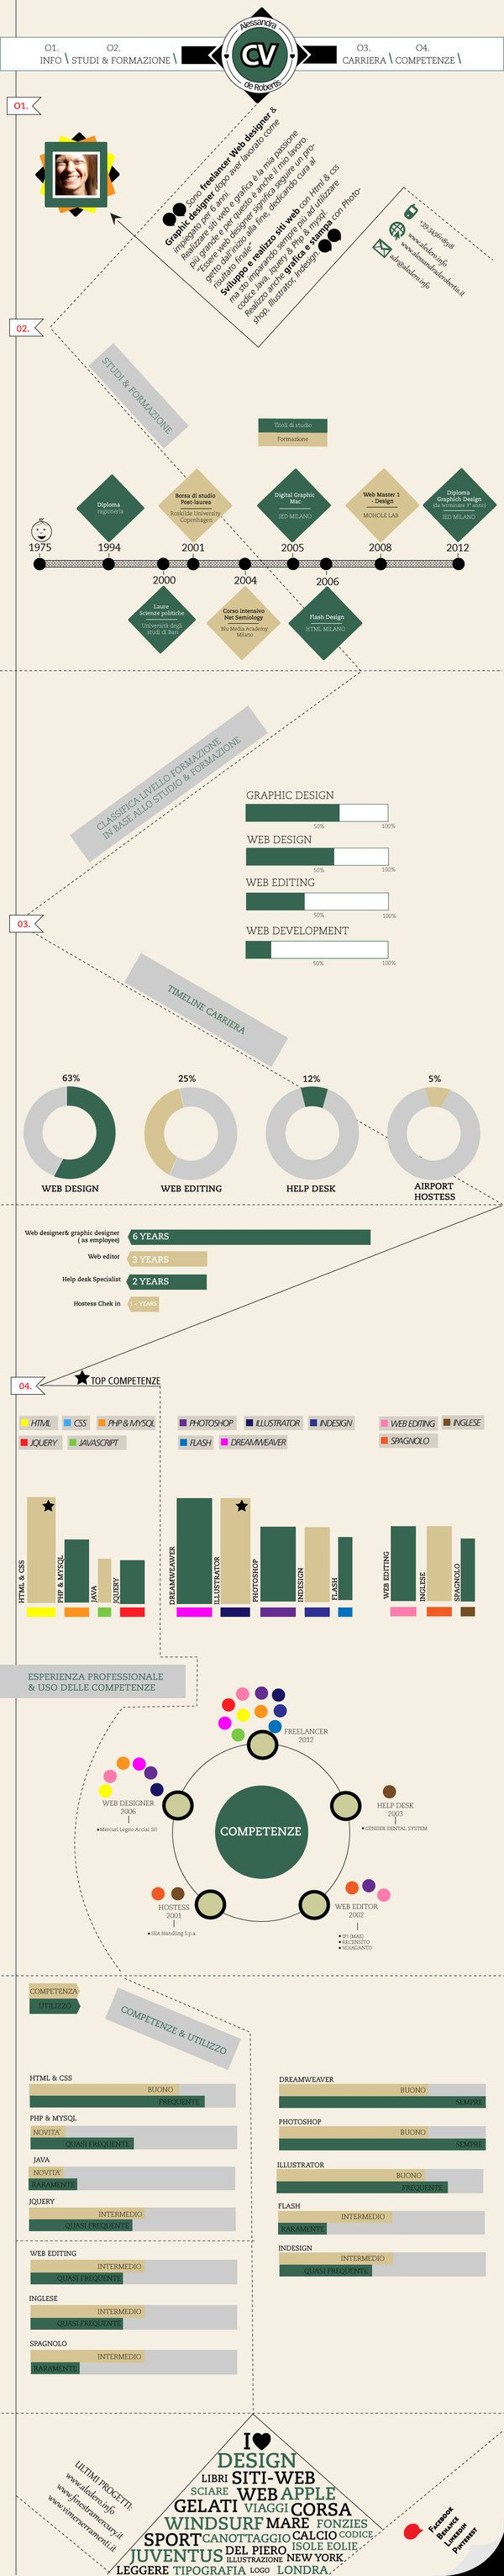 Infographic by Alessandra de Robertis, via Behance